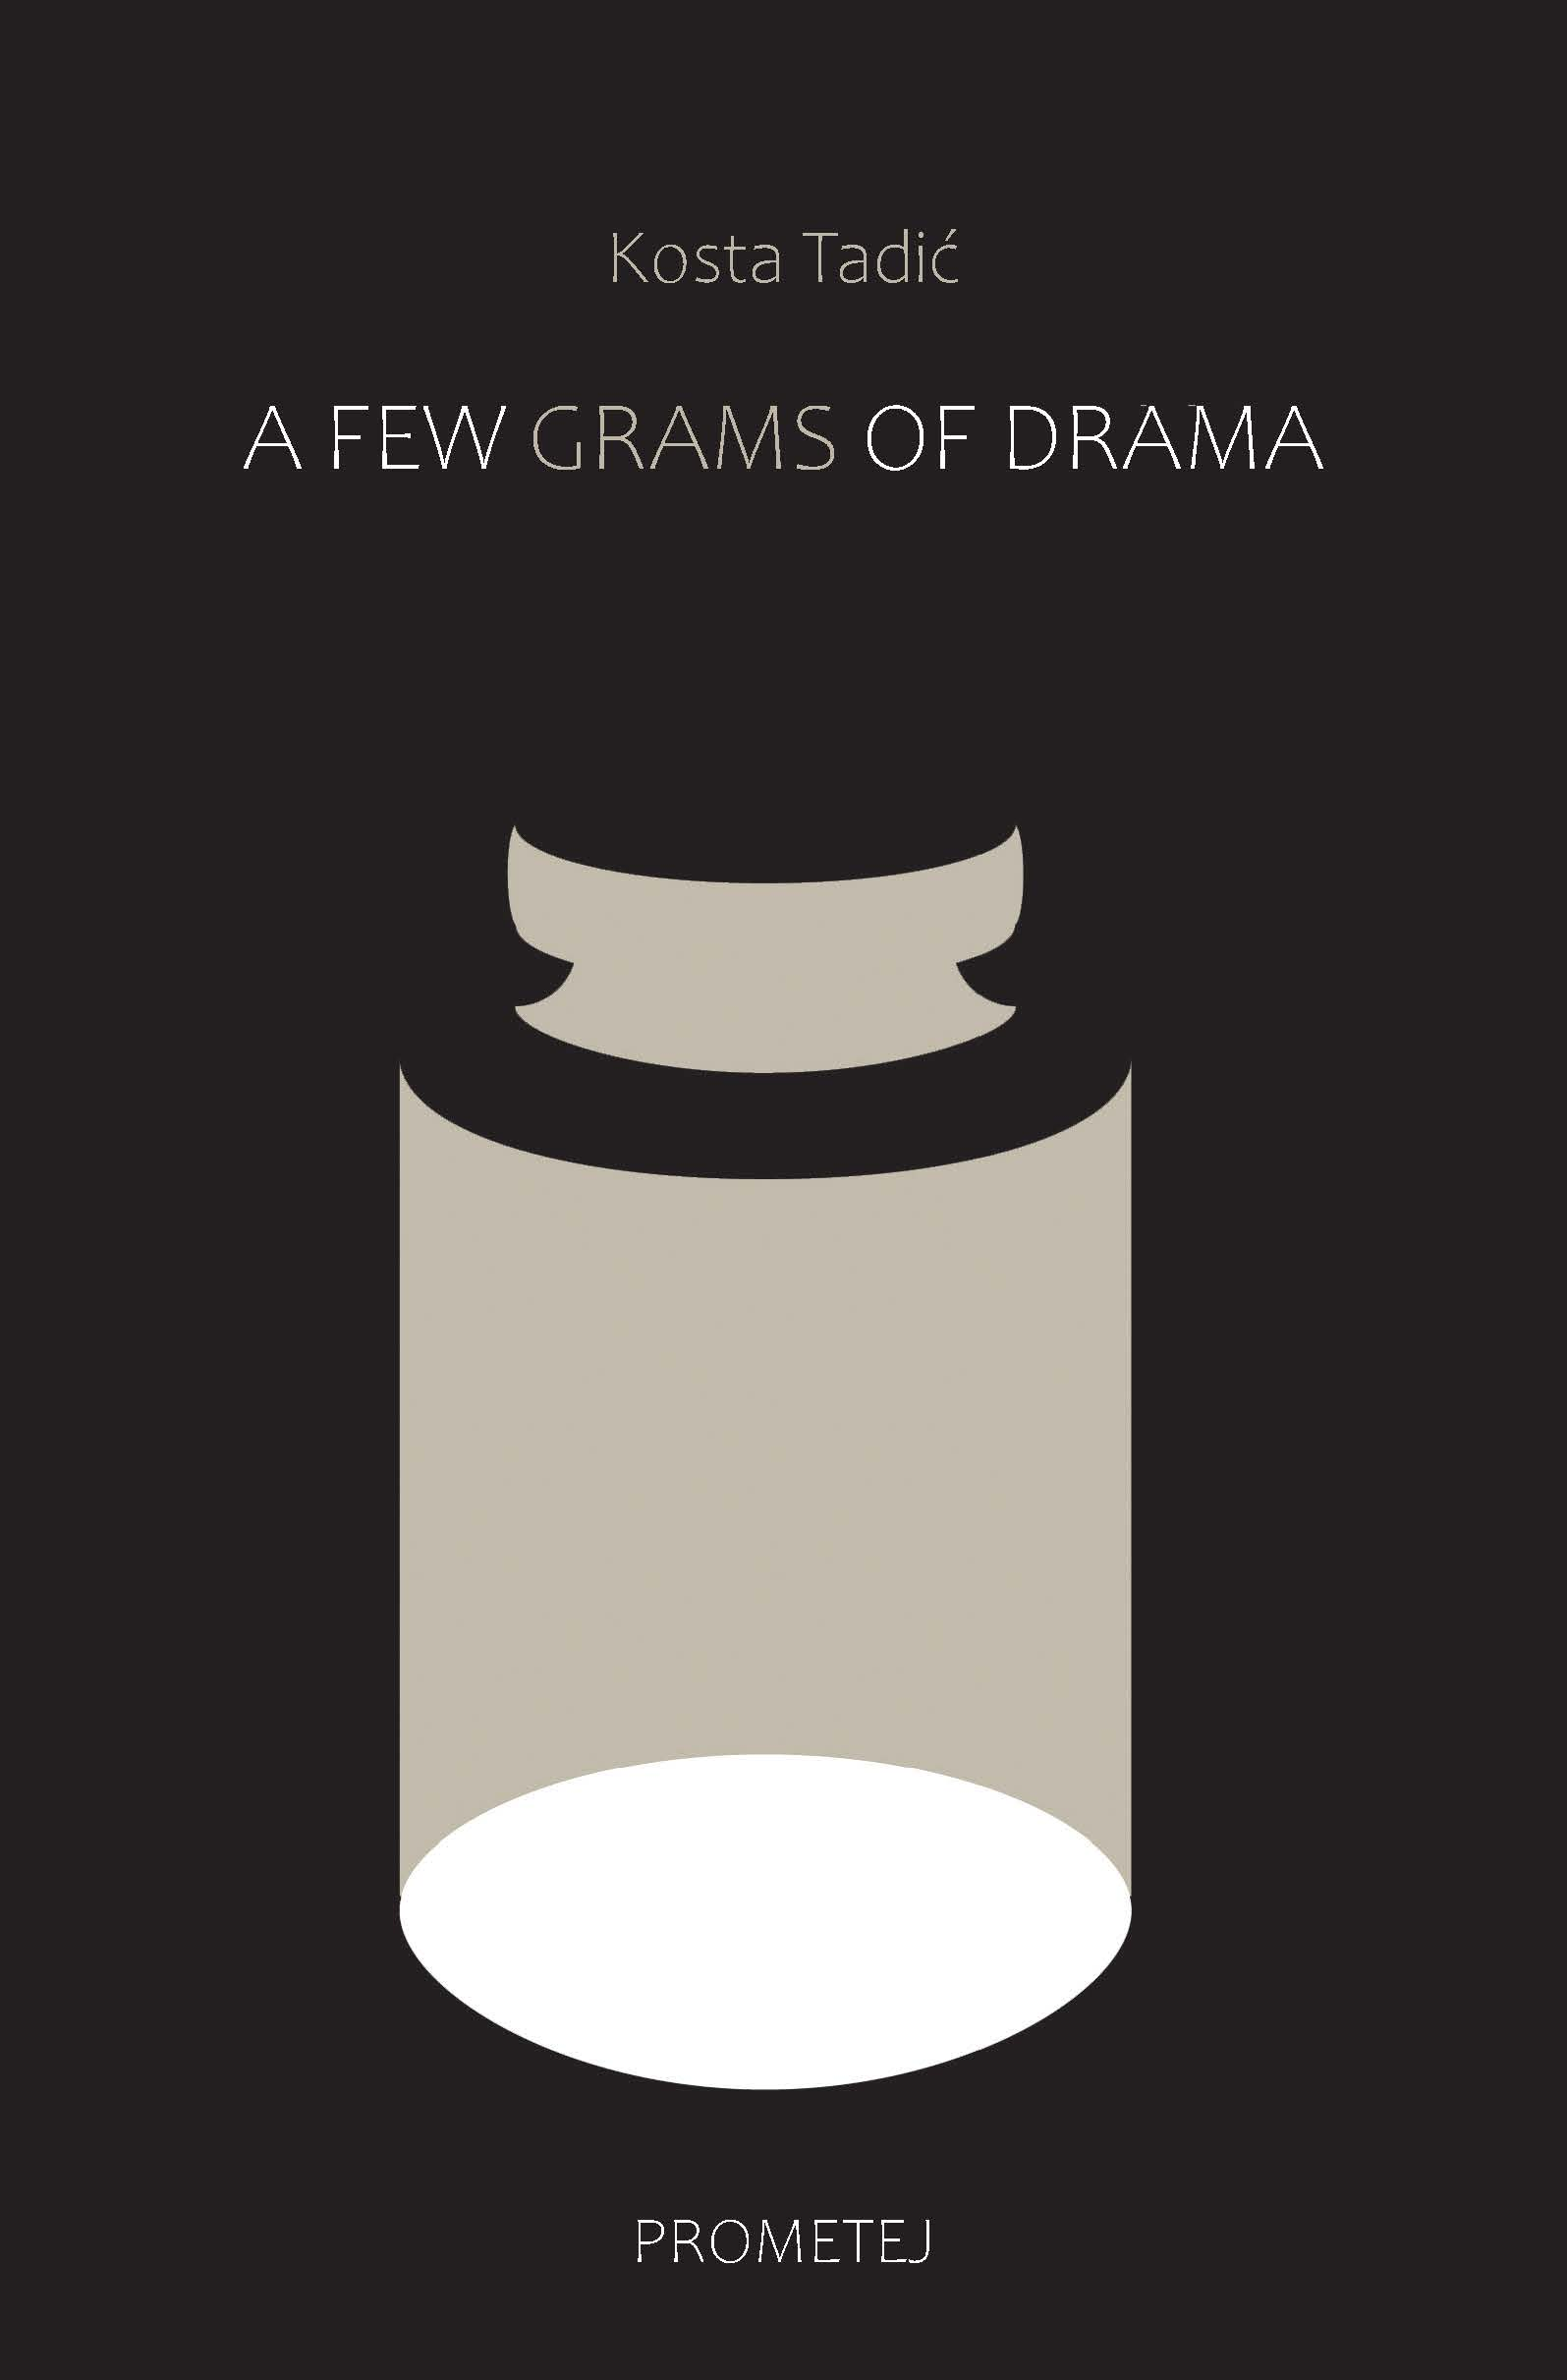 A few grams of drama